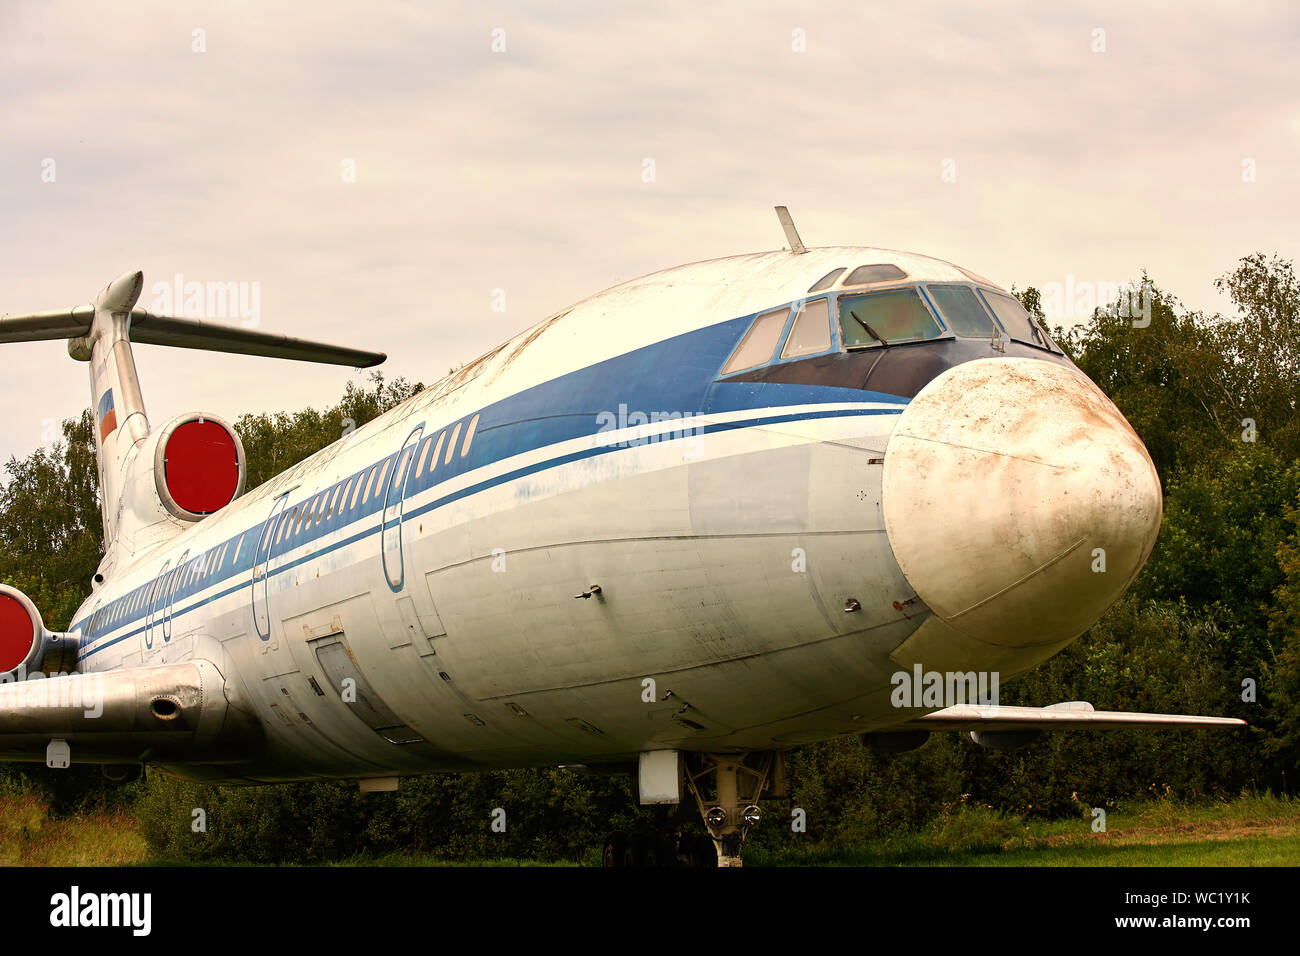 Elements of the old Soviet military plane close-up. Stock Photo